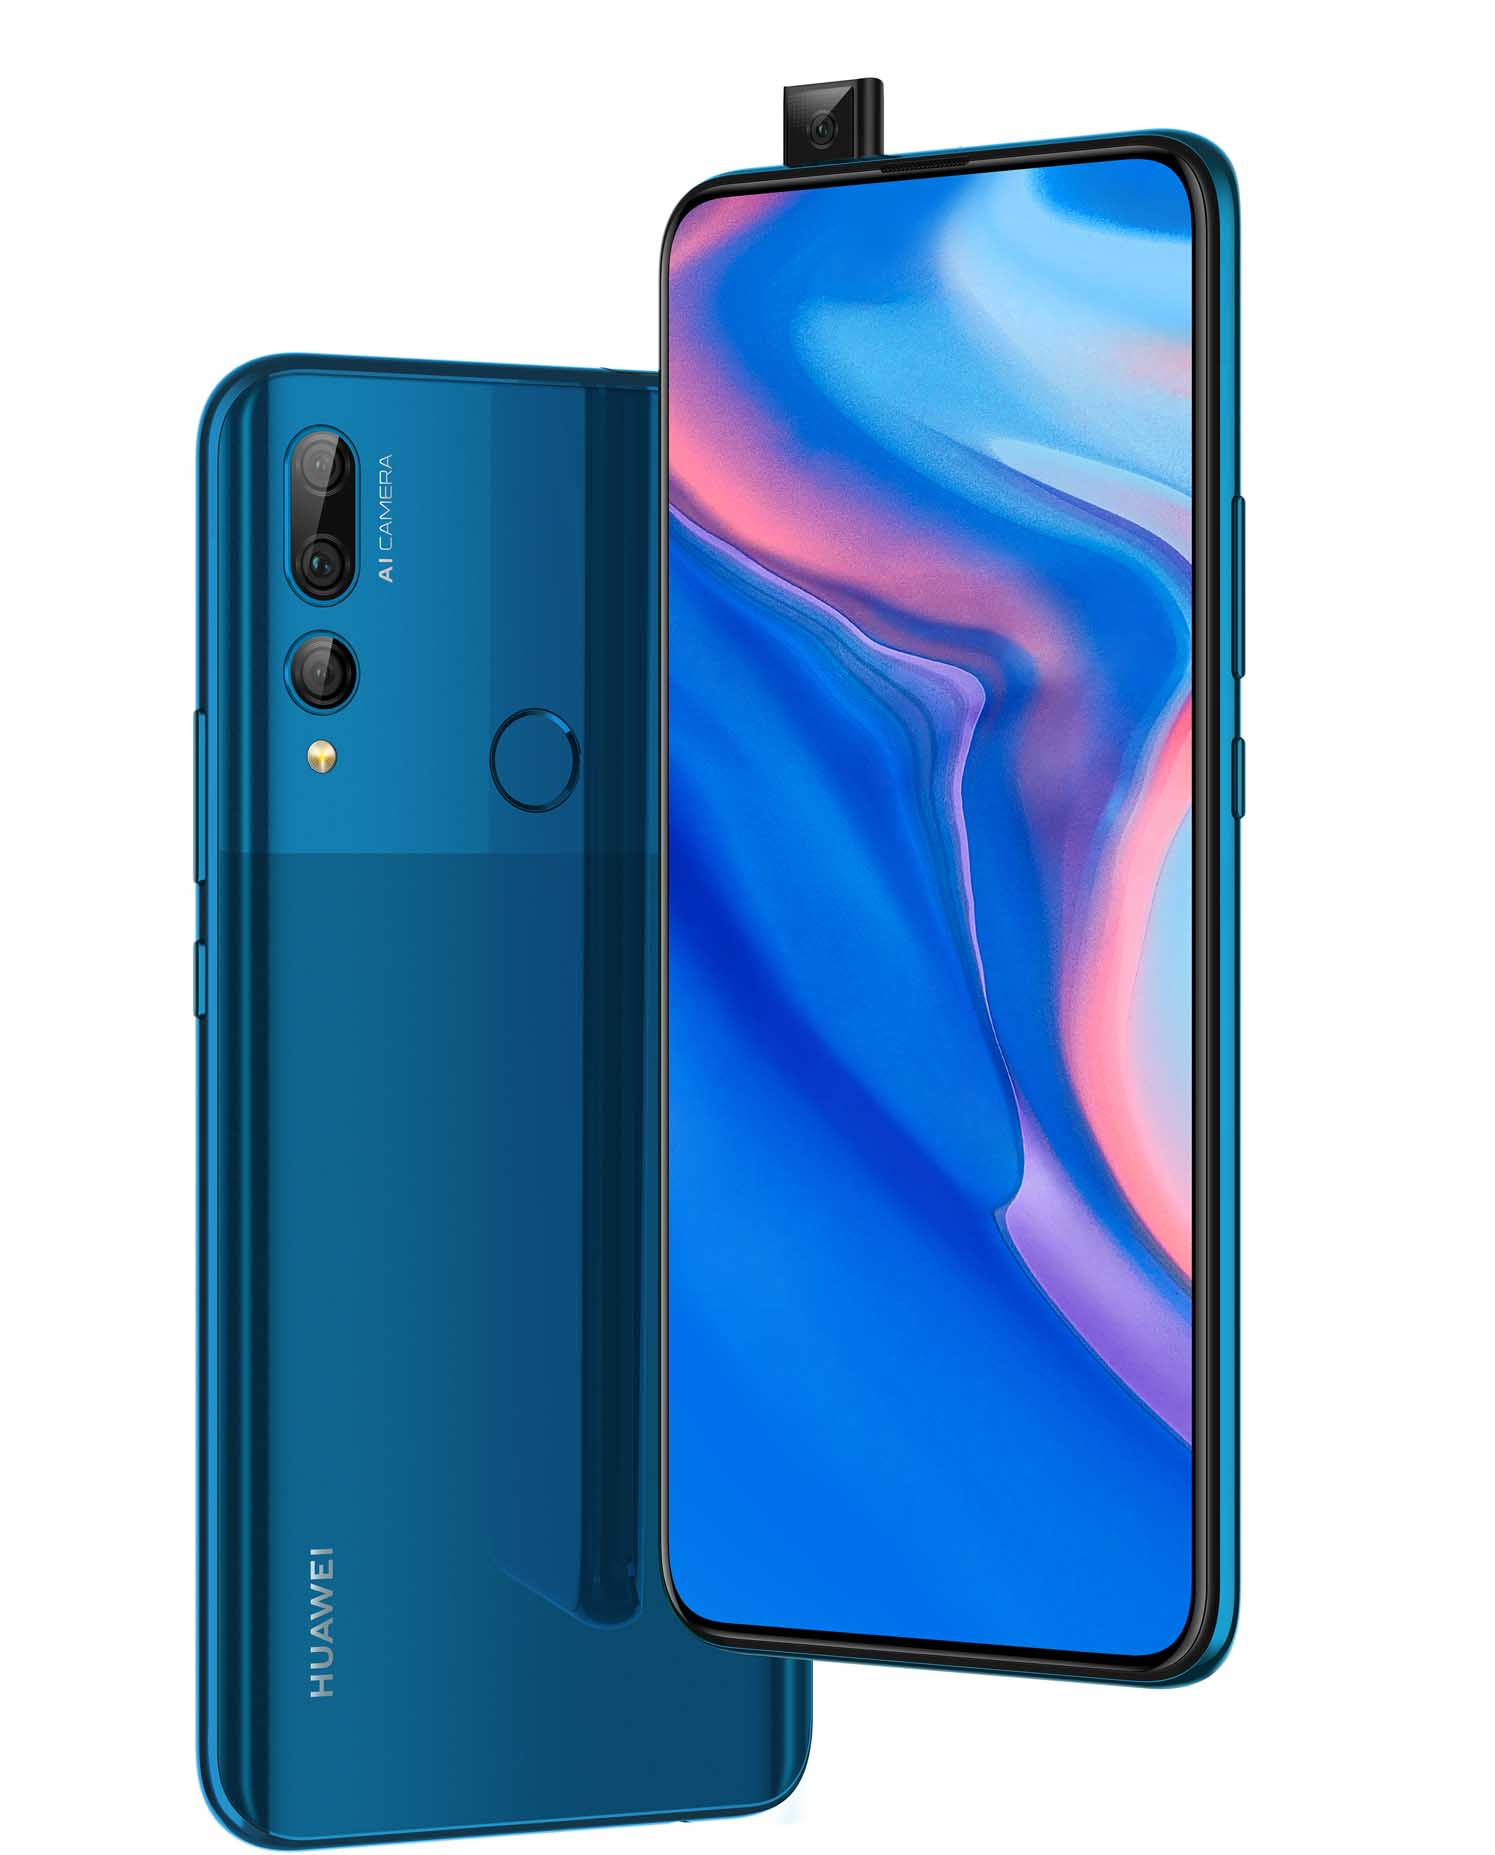 5 Reasons That Make The Huawei Y9 Prime 2019 A Great Choice For Tech Savy Users Vanguard News Huawei prime 2019 will be powered by kirin 710f chipset which is paired with 4 gigabytes of ram i want to sale my huawei y9 prime 2019 with lush condition complete accessories box hand free. huawei y9 prime 2019